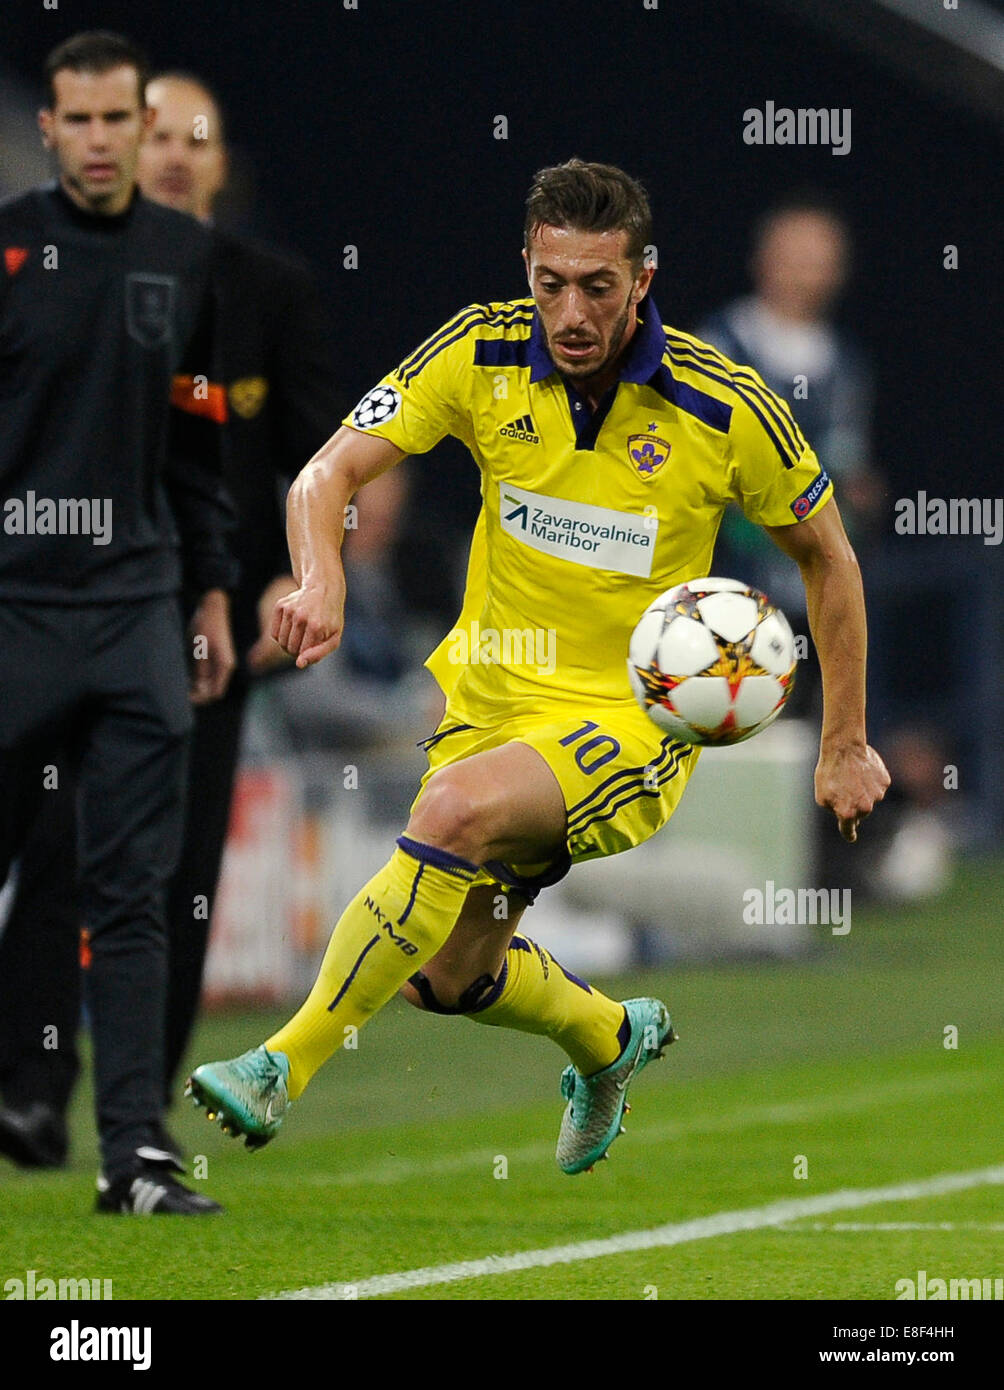 Gelsenkirchen, Germany 30.9.2014, Champions League 14/15 Group stage, Schalke 04 - NK Maribor -  Agim Ibraimi - Stock Image